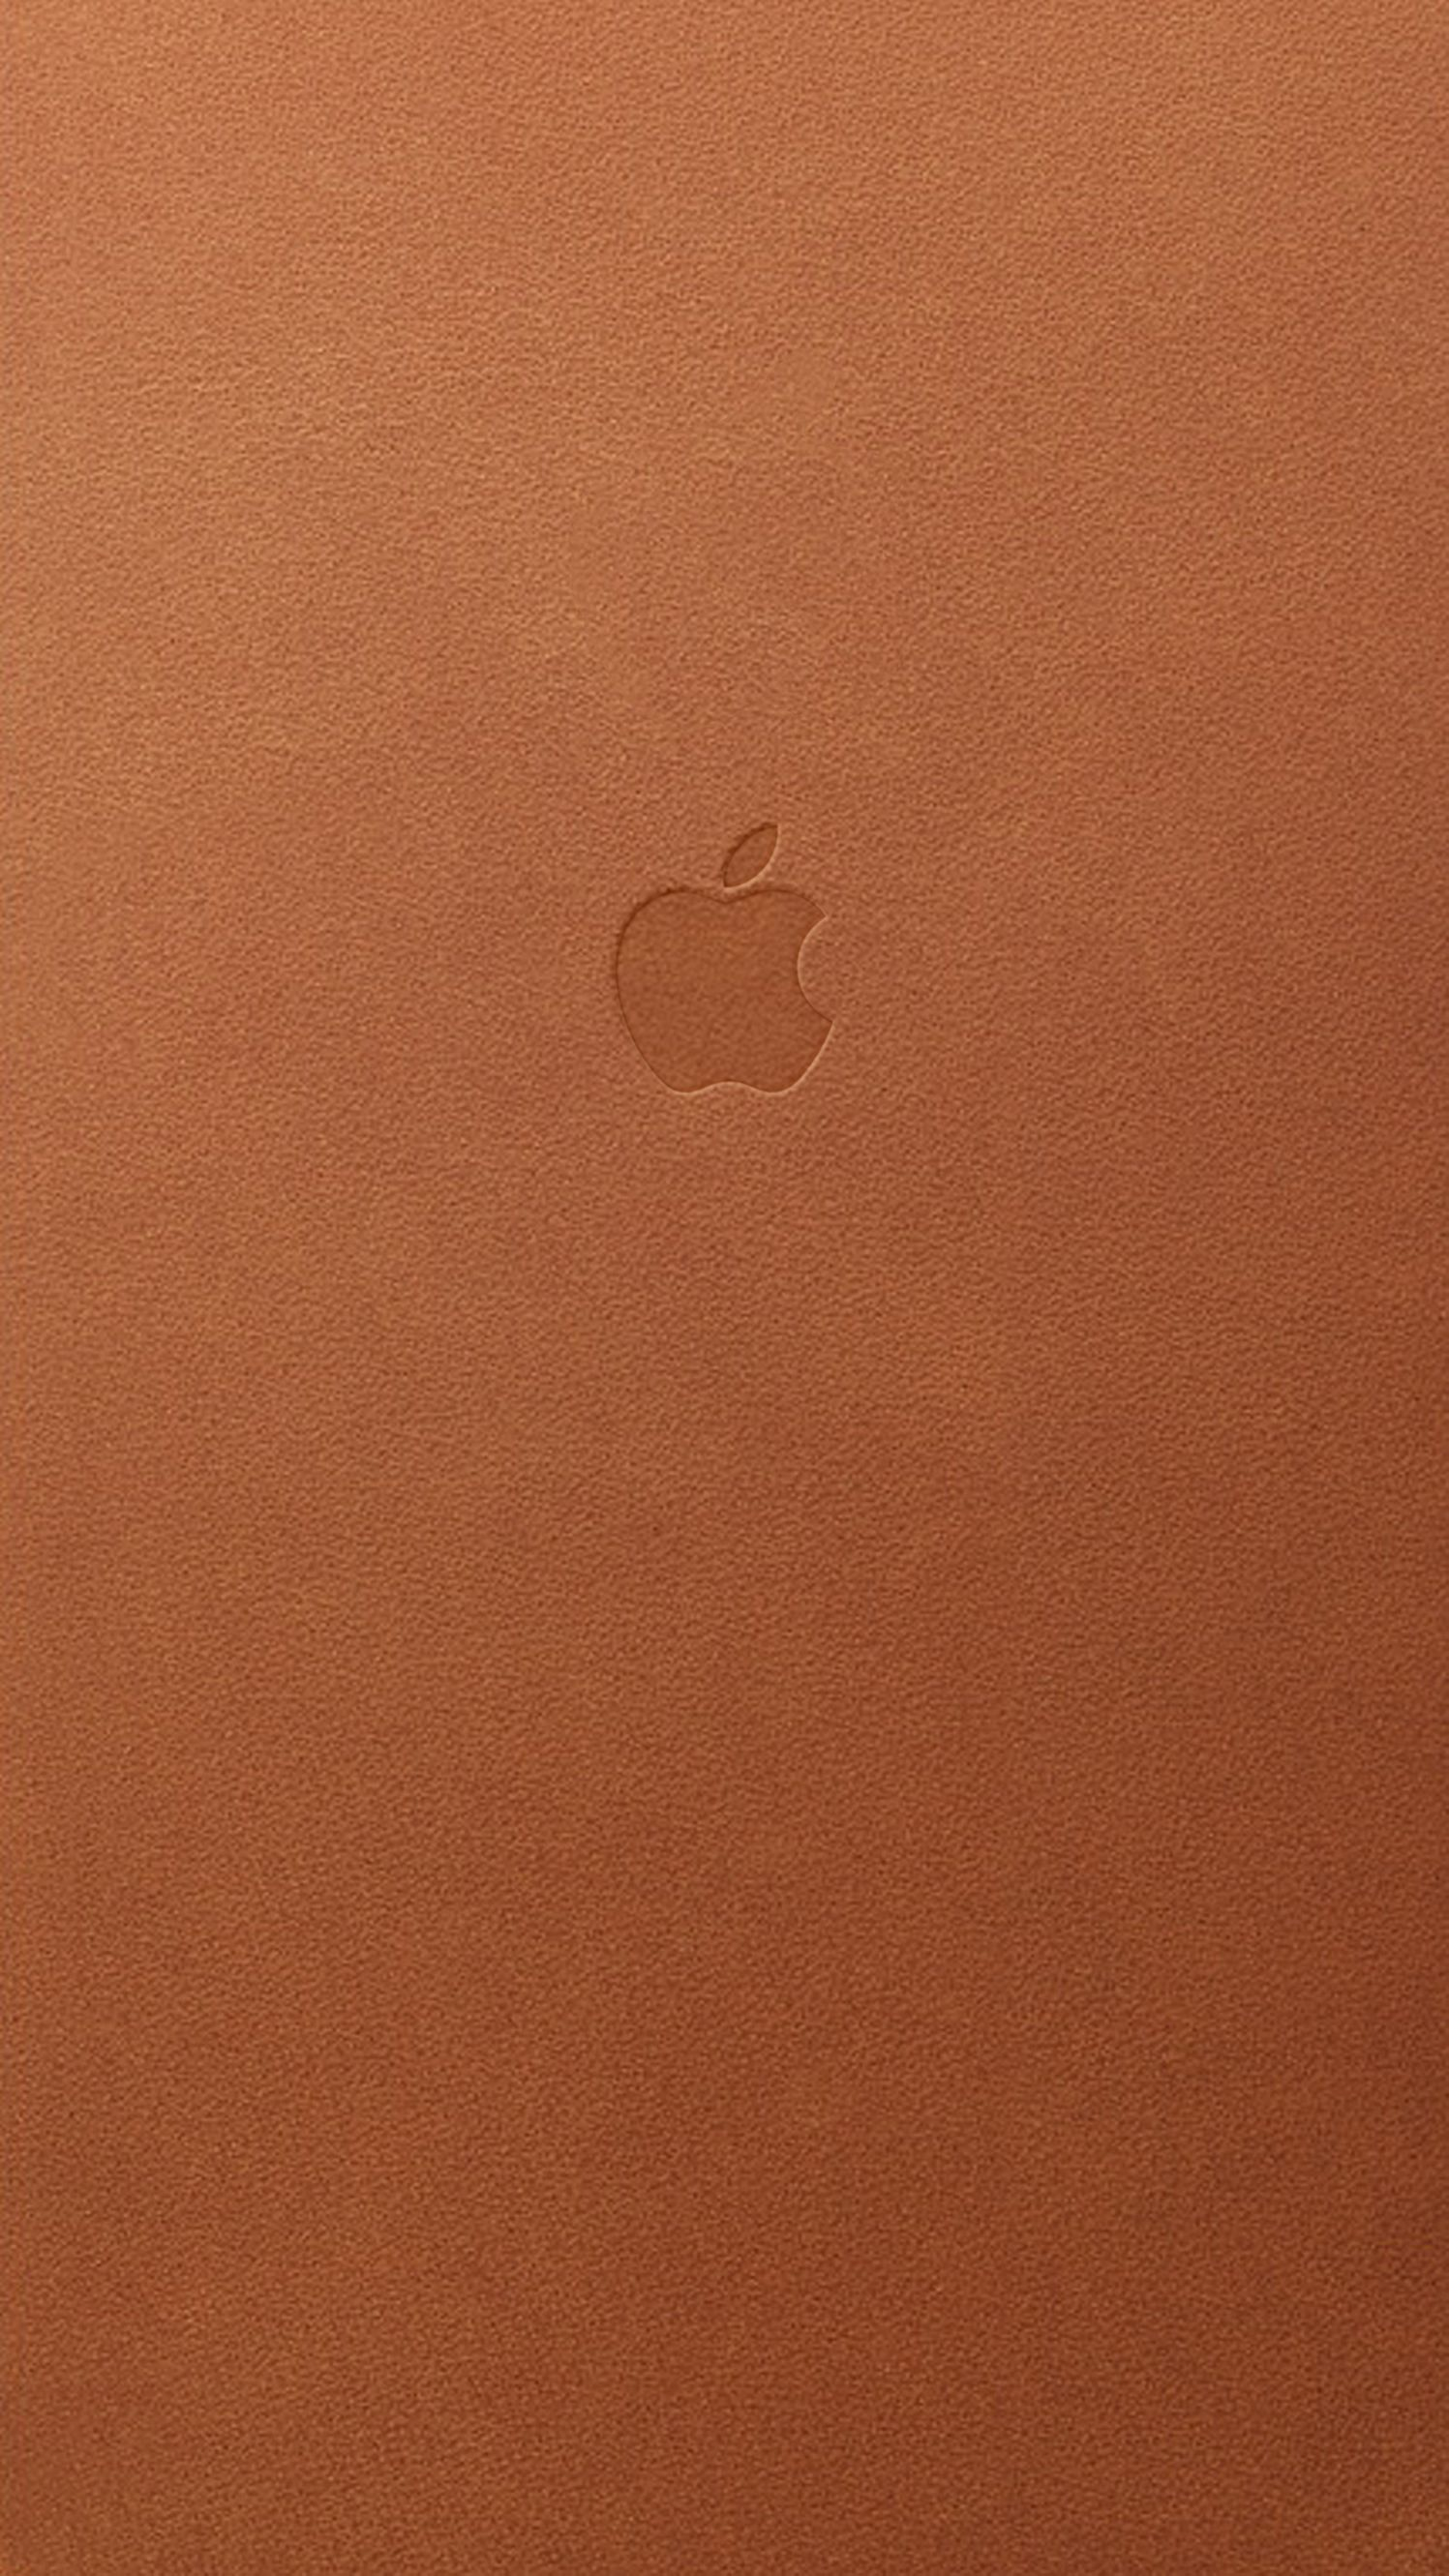 Leather Iphone 6 Wallpapers Top Free Leather Iphone 6